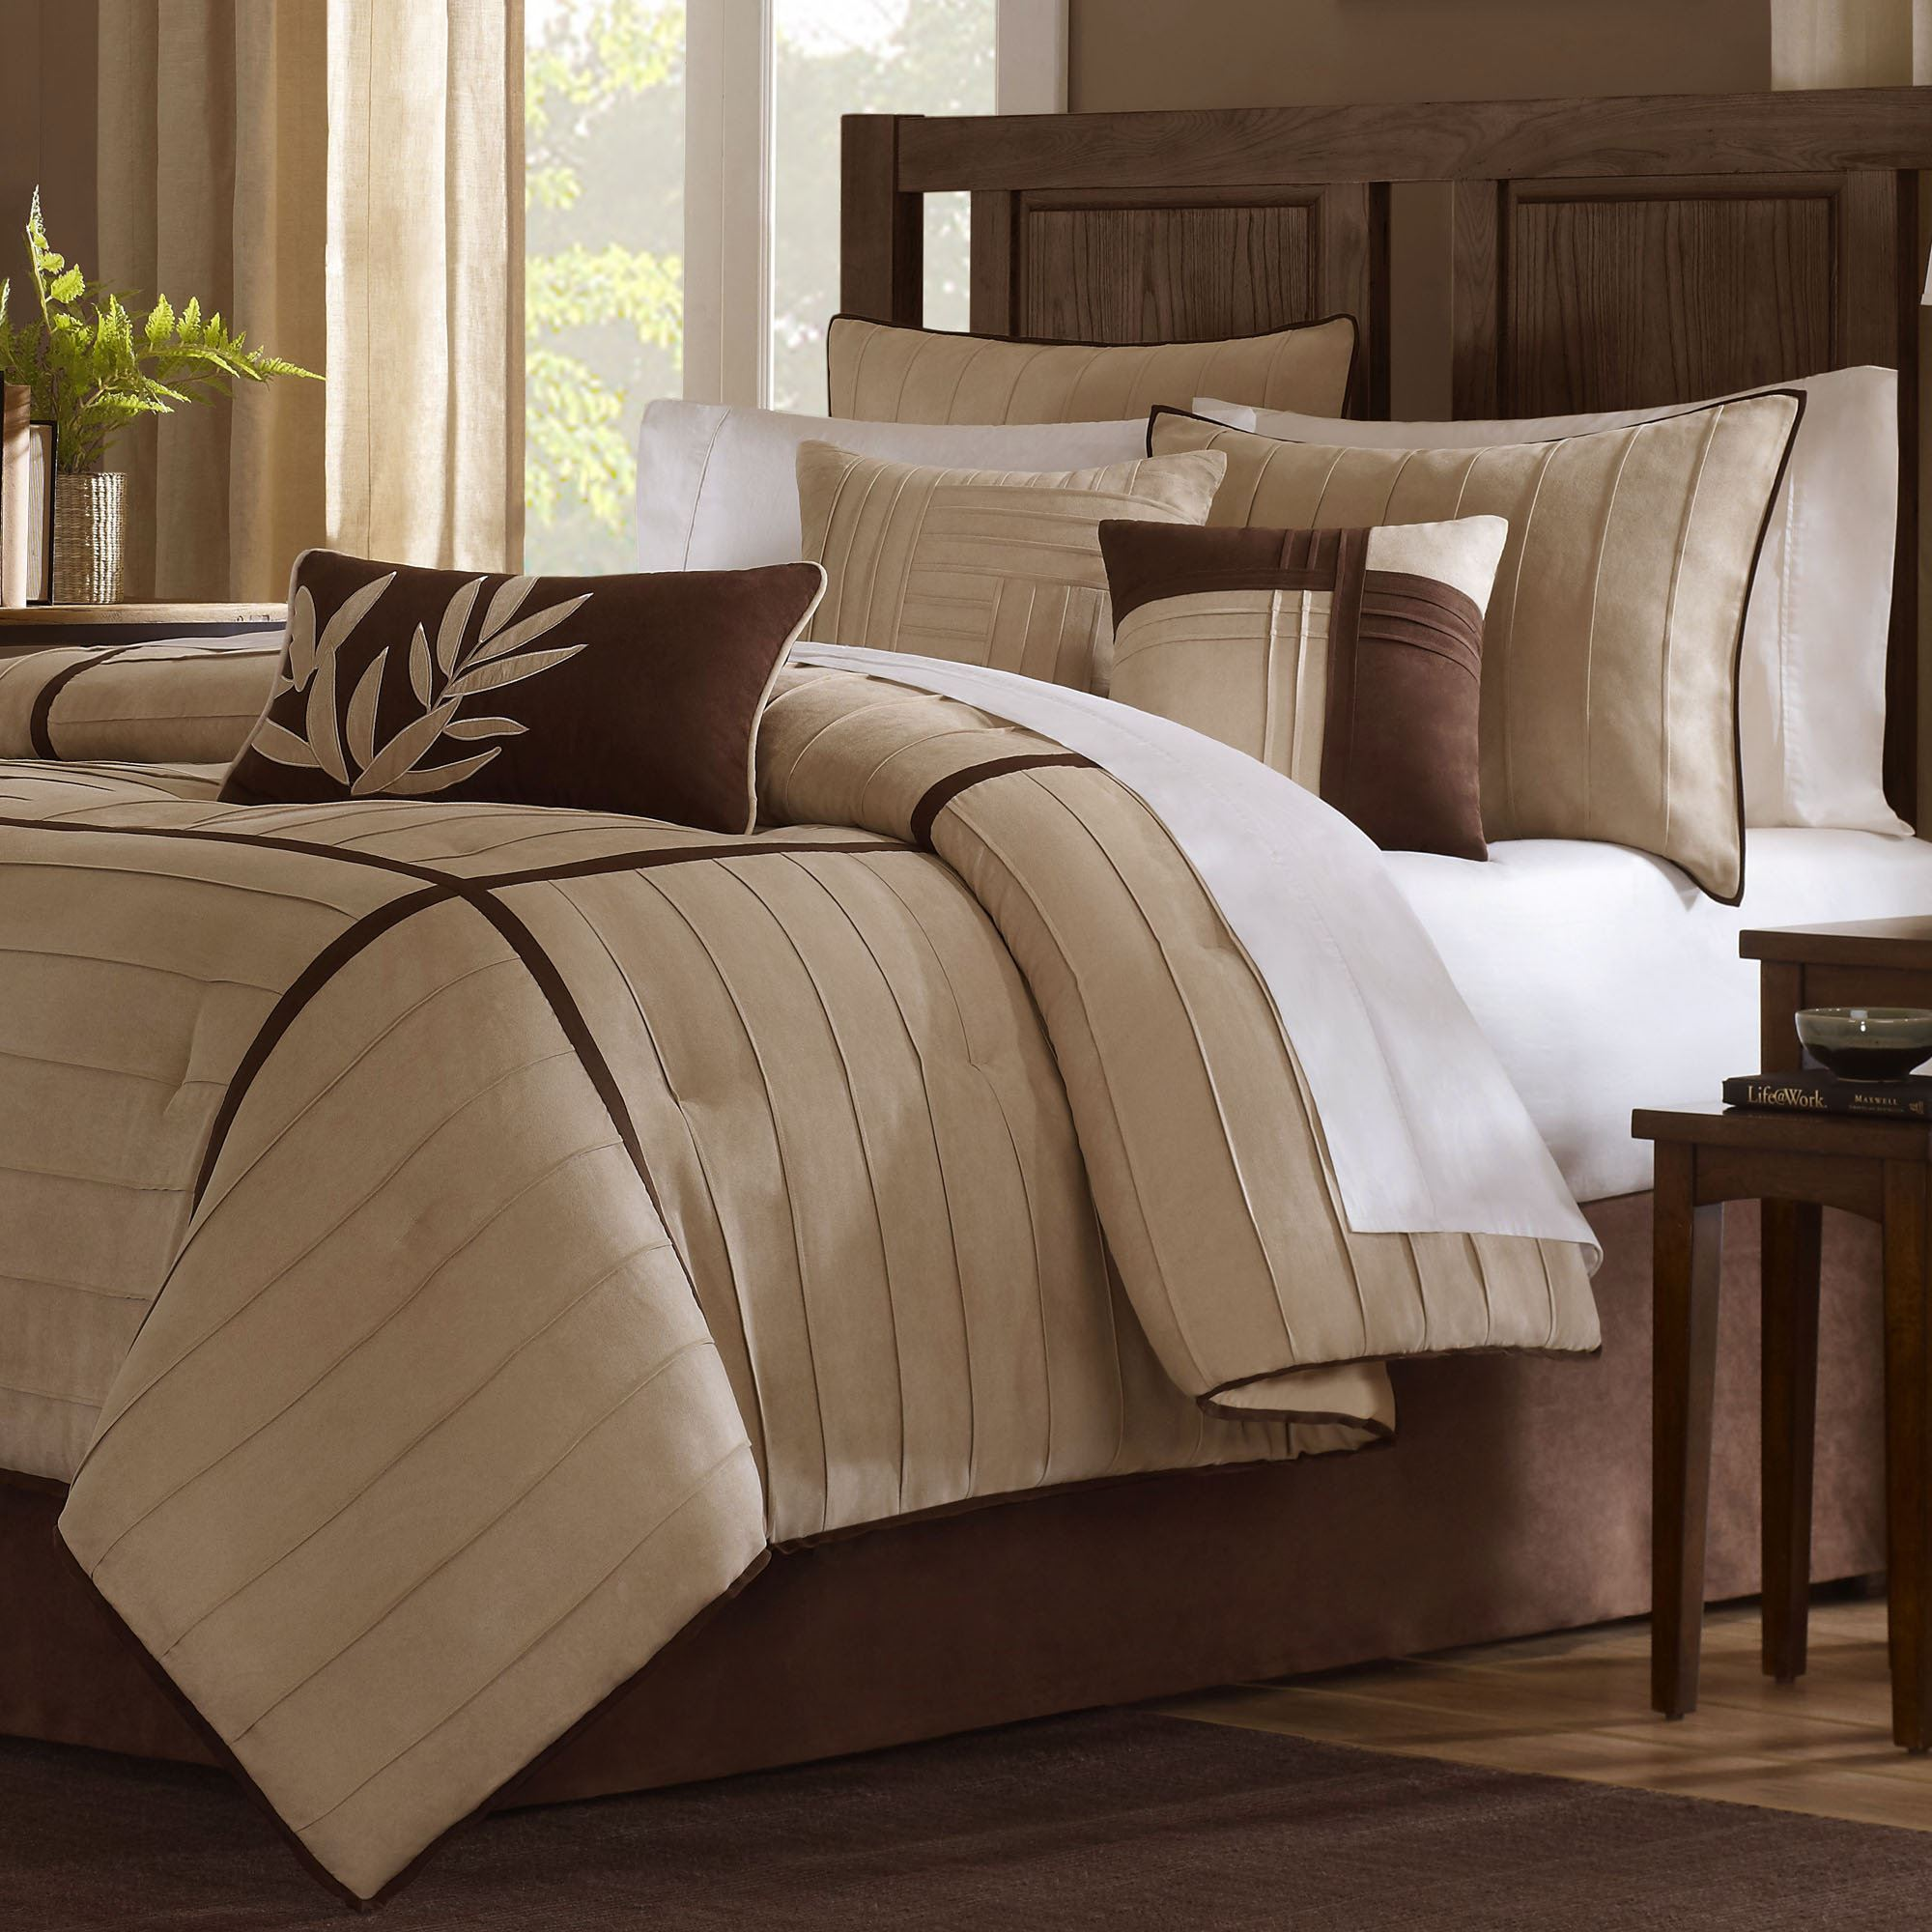 landcaster microsuede 7 pc comforter bed set